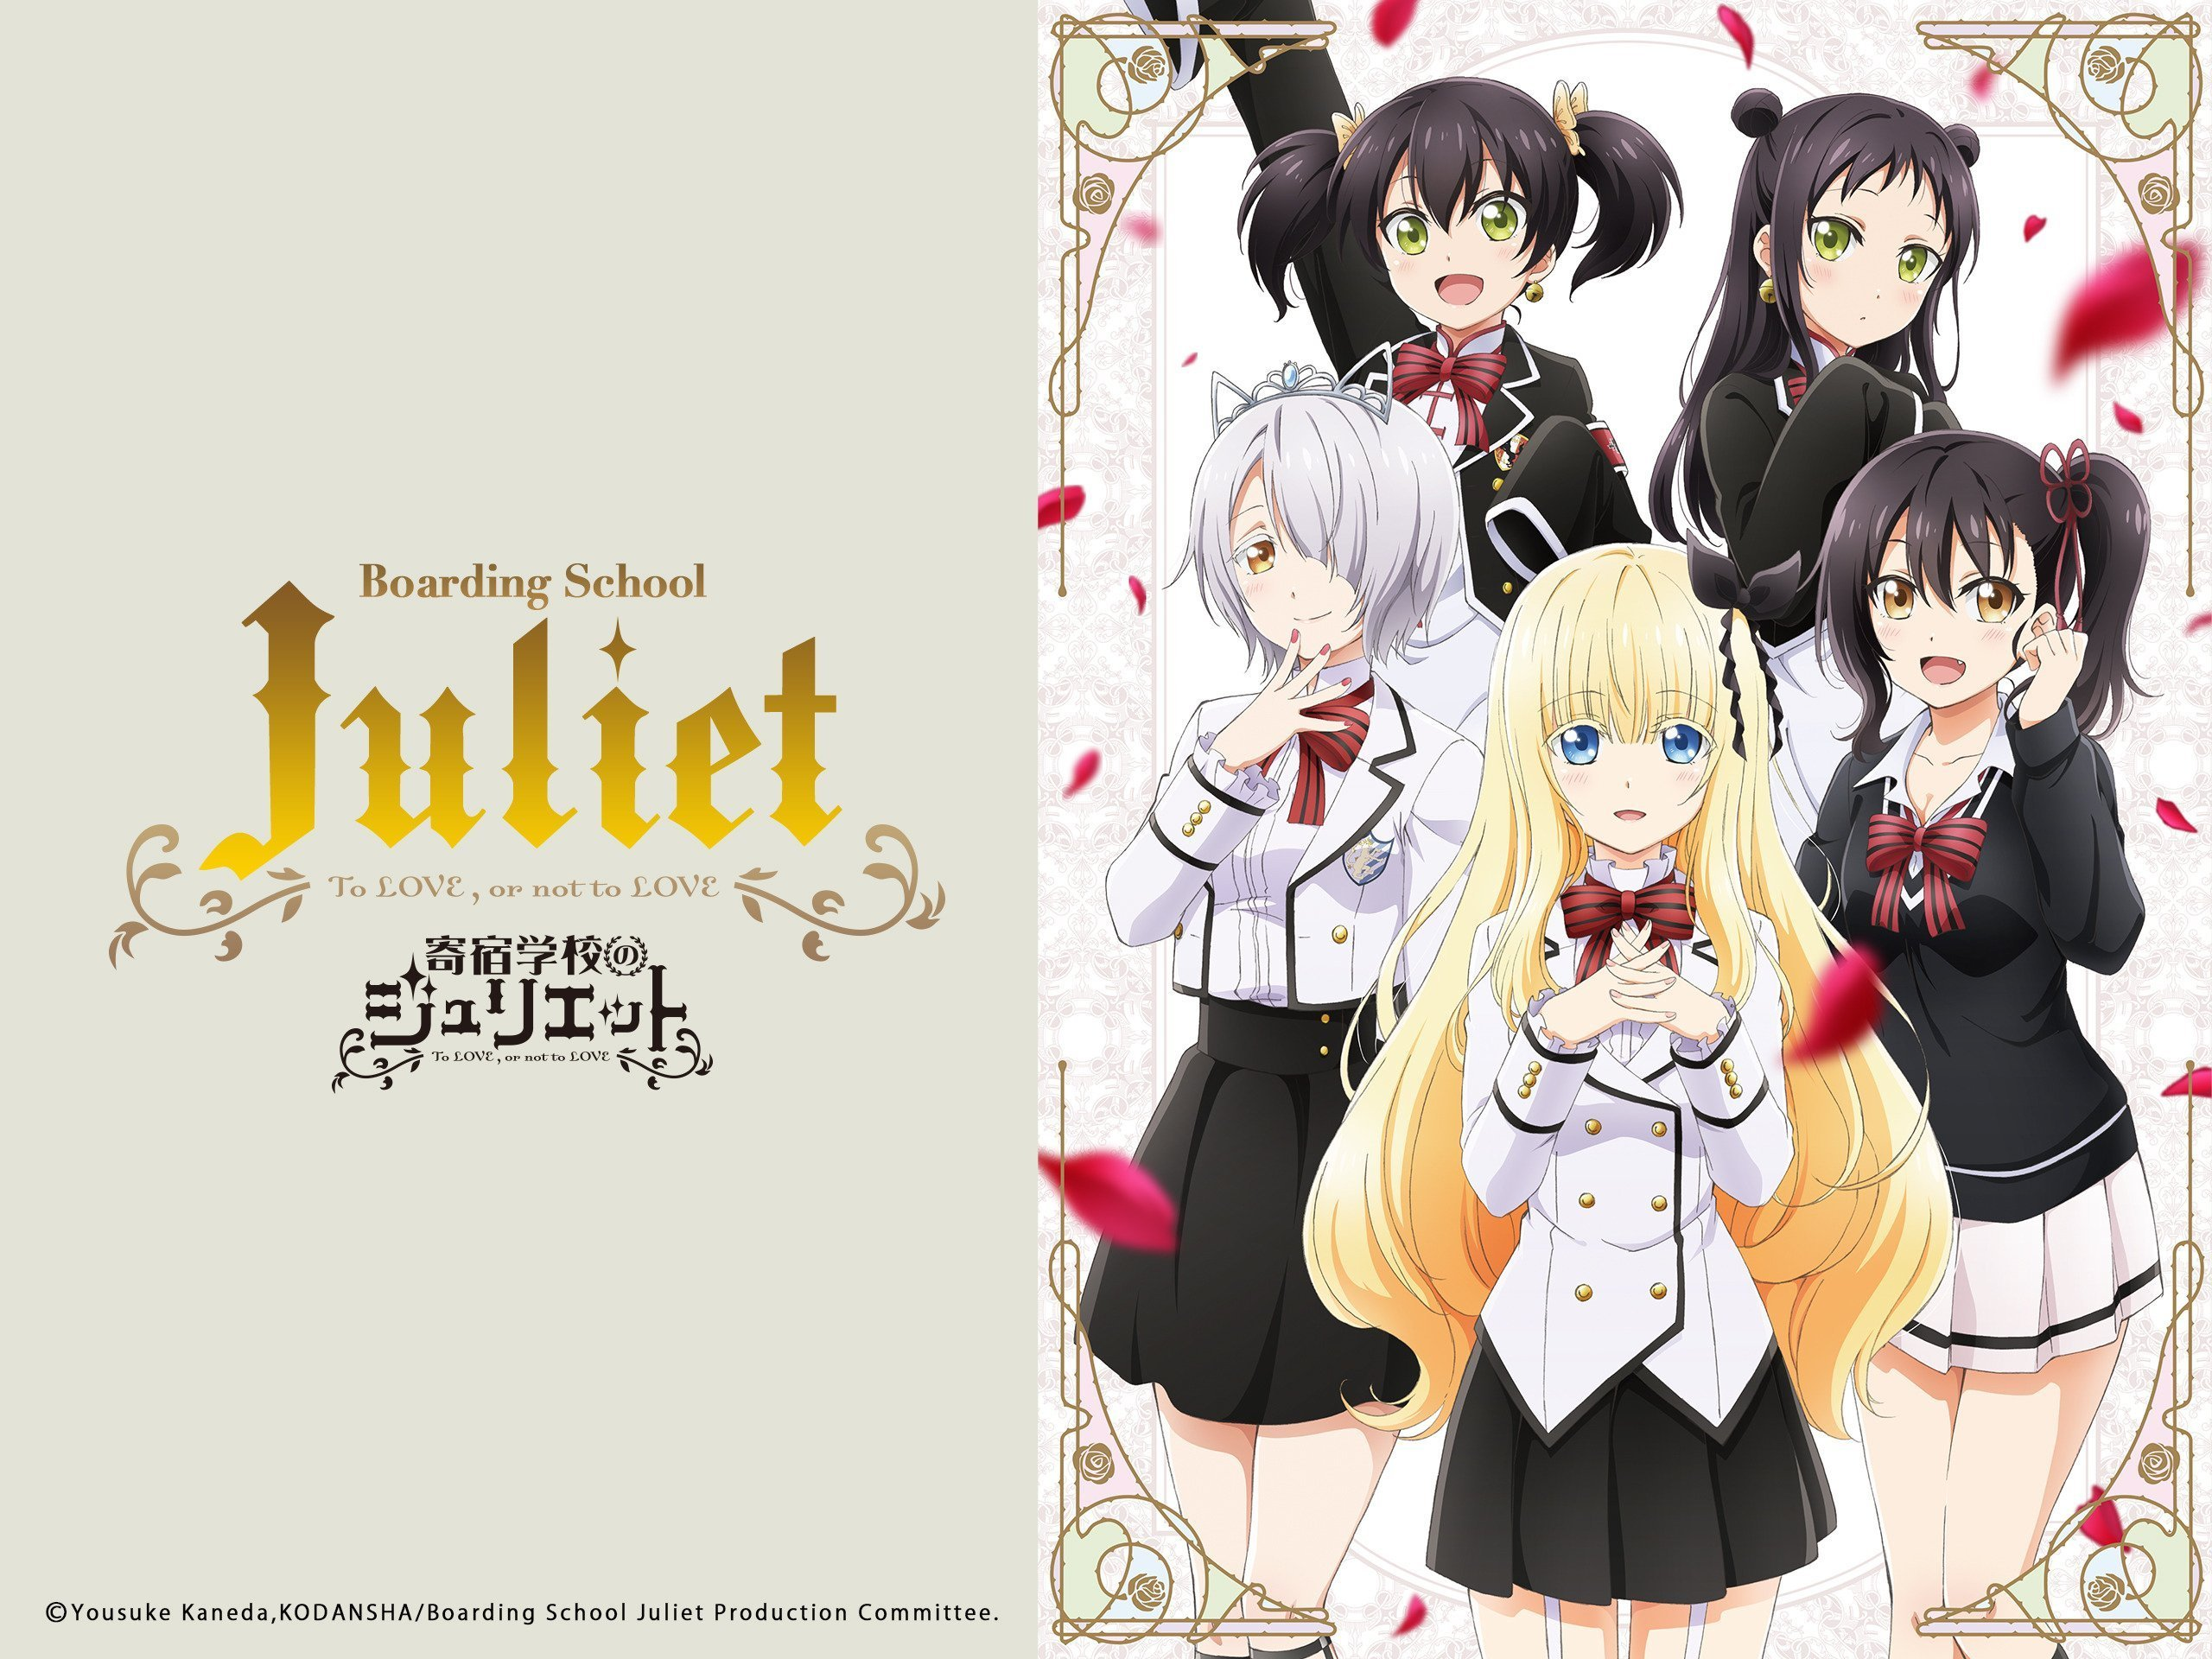 Prime Video: Boarding School Juliet